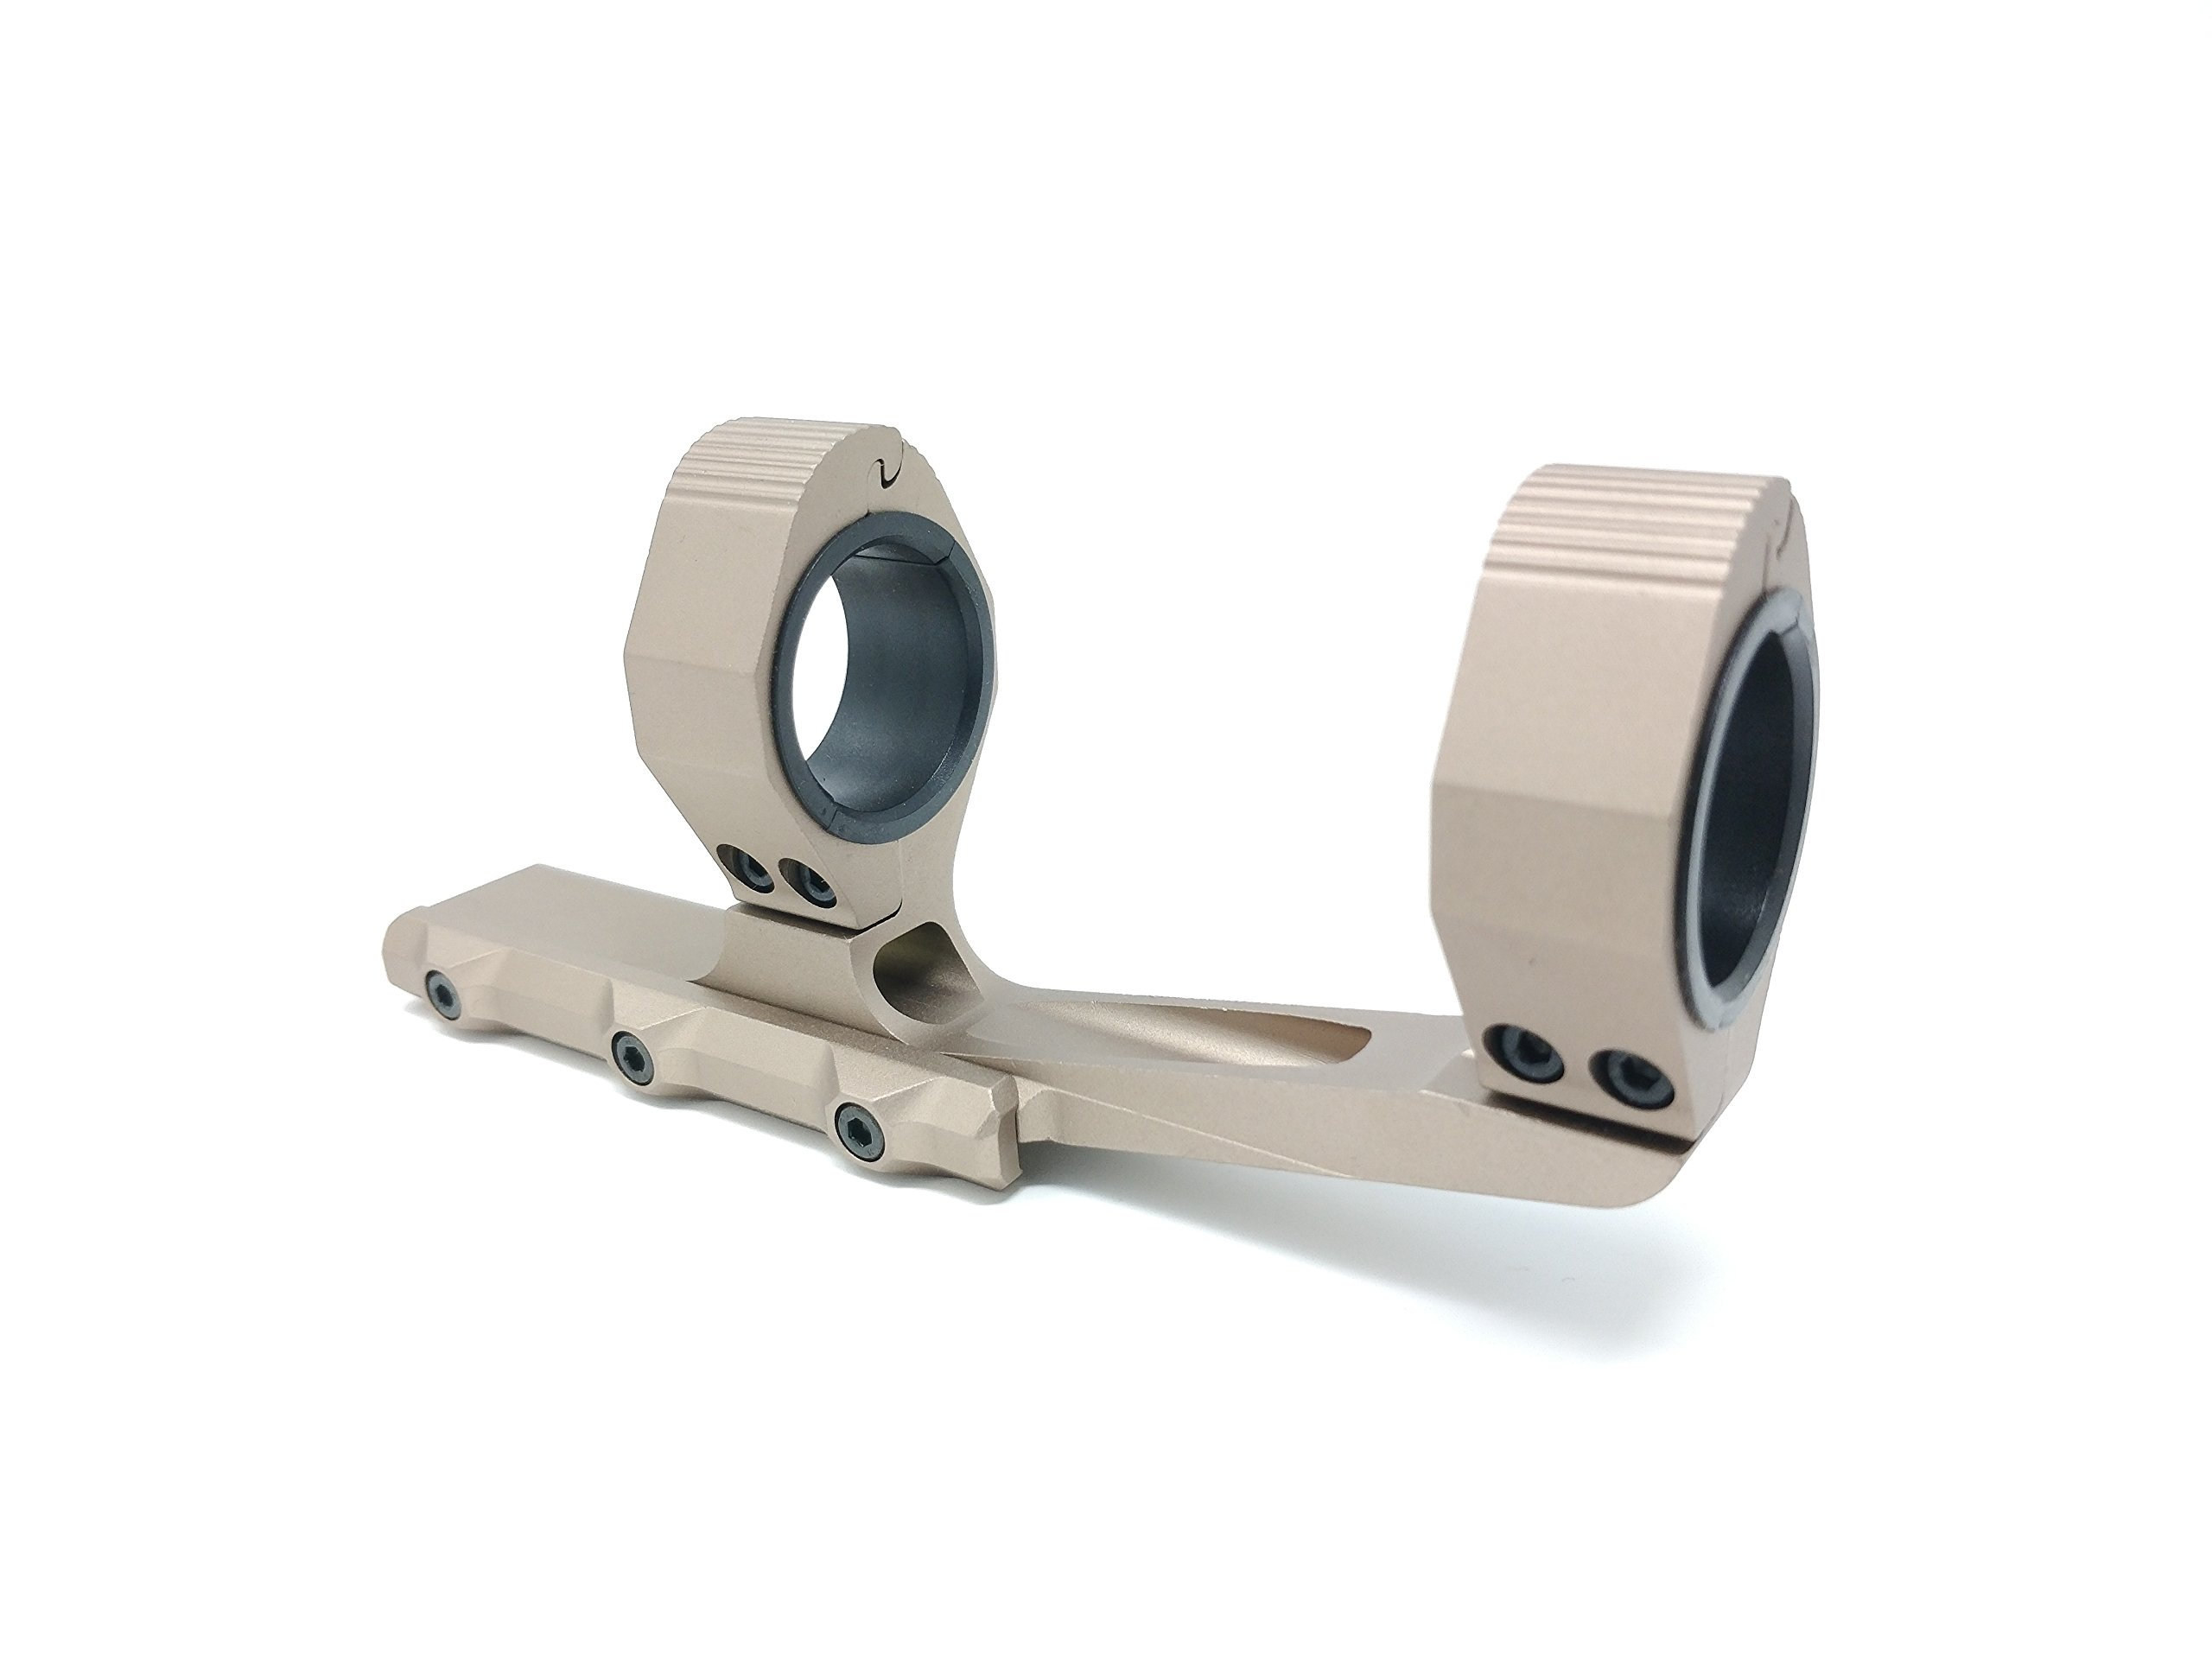 AERO Bronze Rifle Scope Mount Rings 1'' / 30mm Cantilever for 20mm Picatinny Rail Optics 2 Inch Offset With Rear Level by AERO Gold Rifle Scope Mount Rings 1'' / 30mm 2 Inch Offset With Level